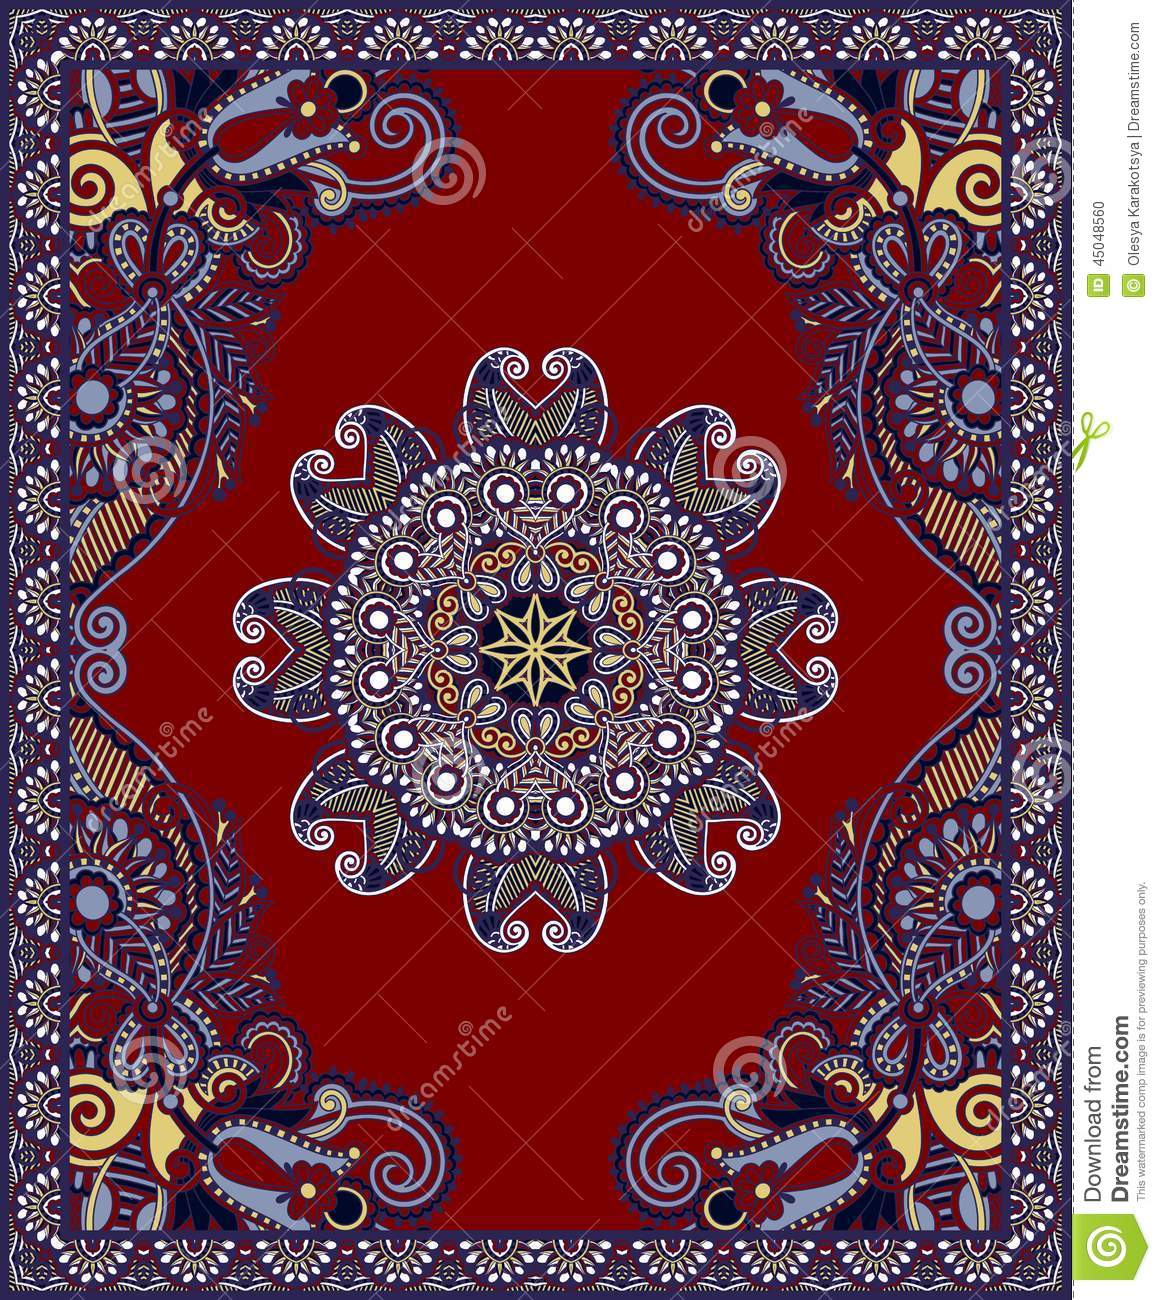 Ukrainian Oriental Floral Ornamental Carpet Design. Cotton, Border.